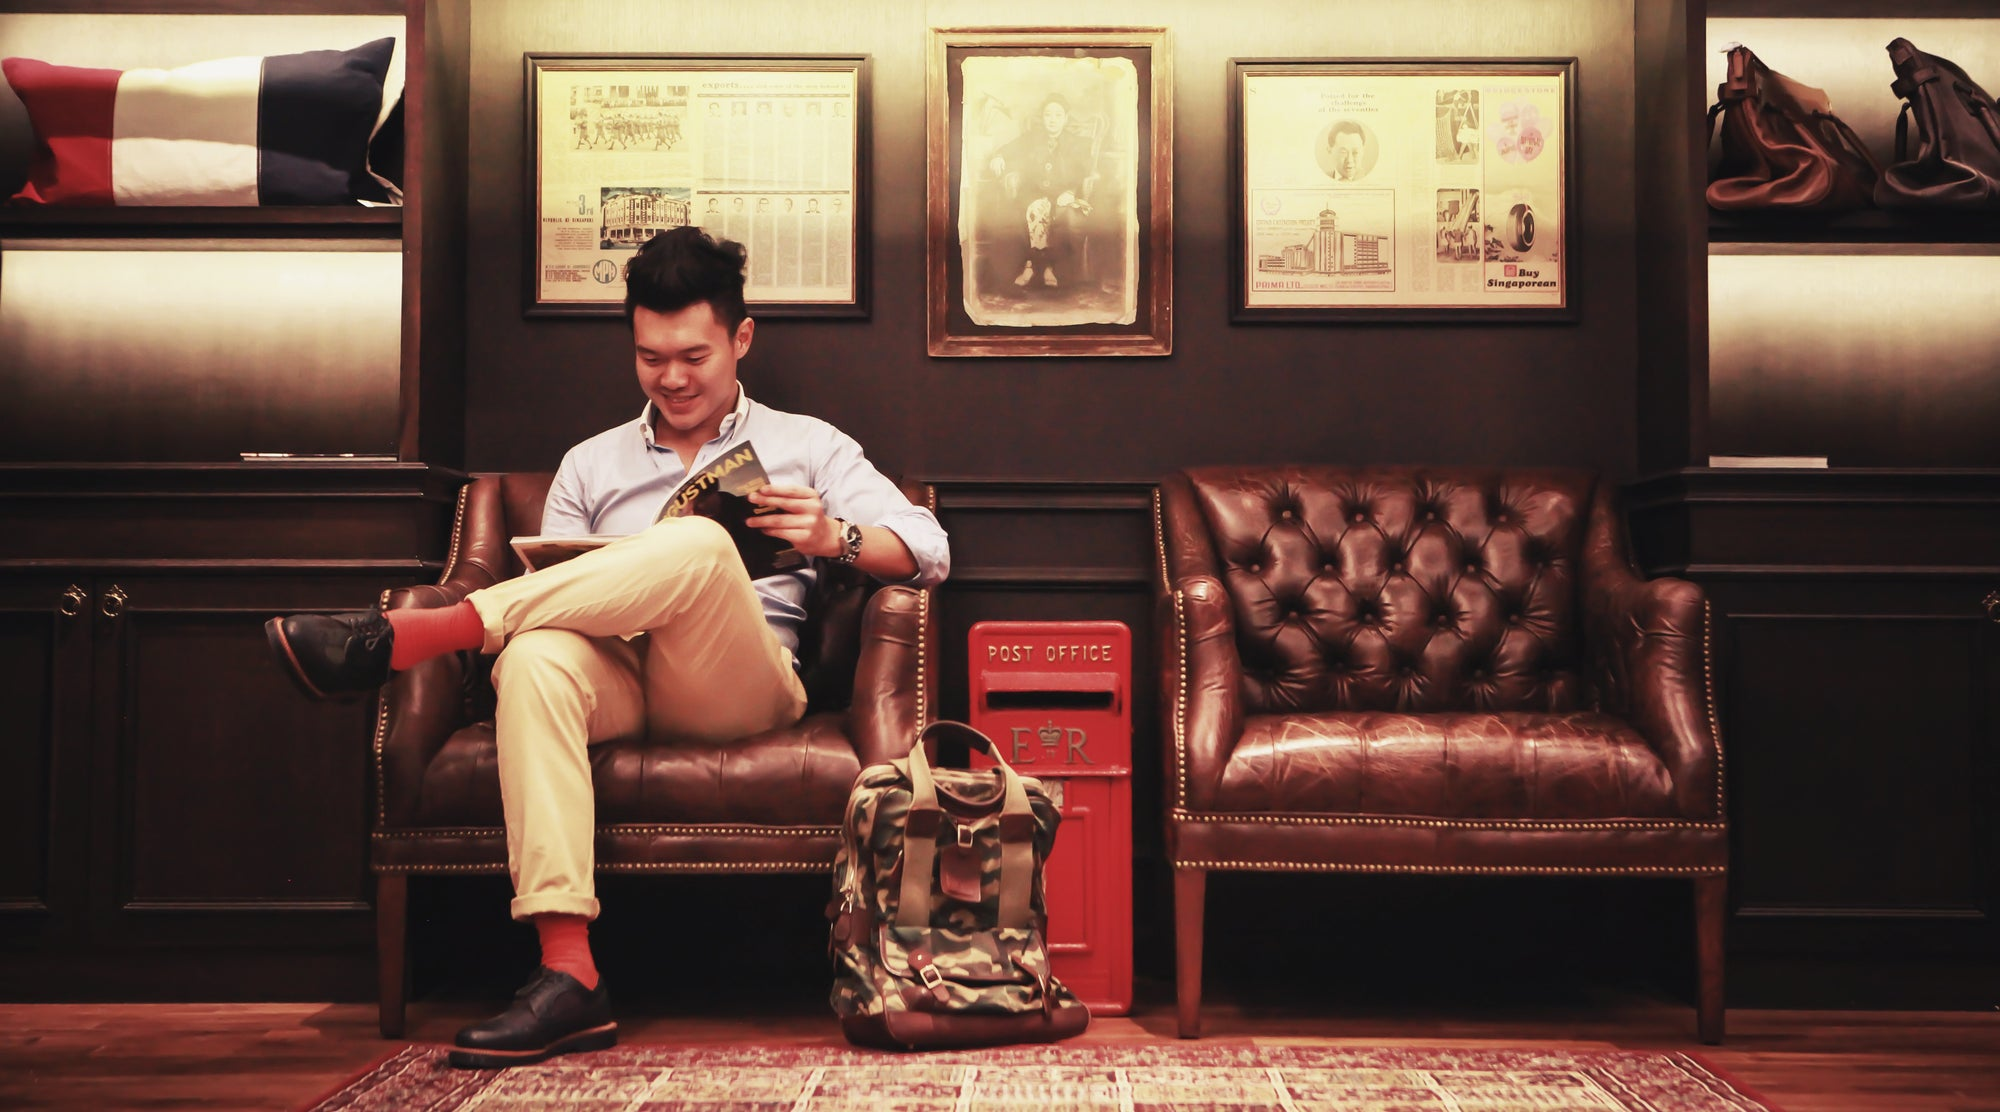 6th Oct | Creative Capital: The Singaporean entrepreneur who tells stories through clever bags (CNA Lifestyle)